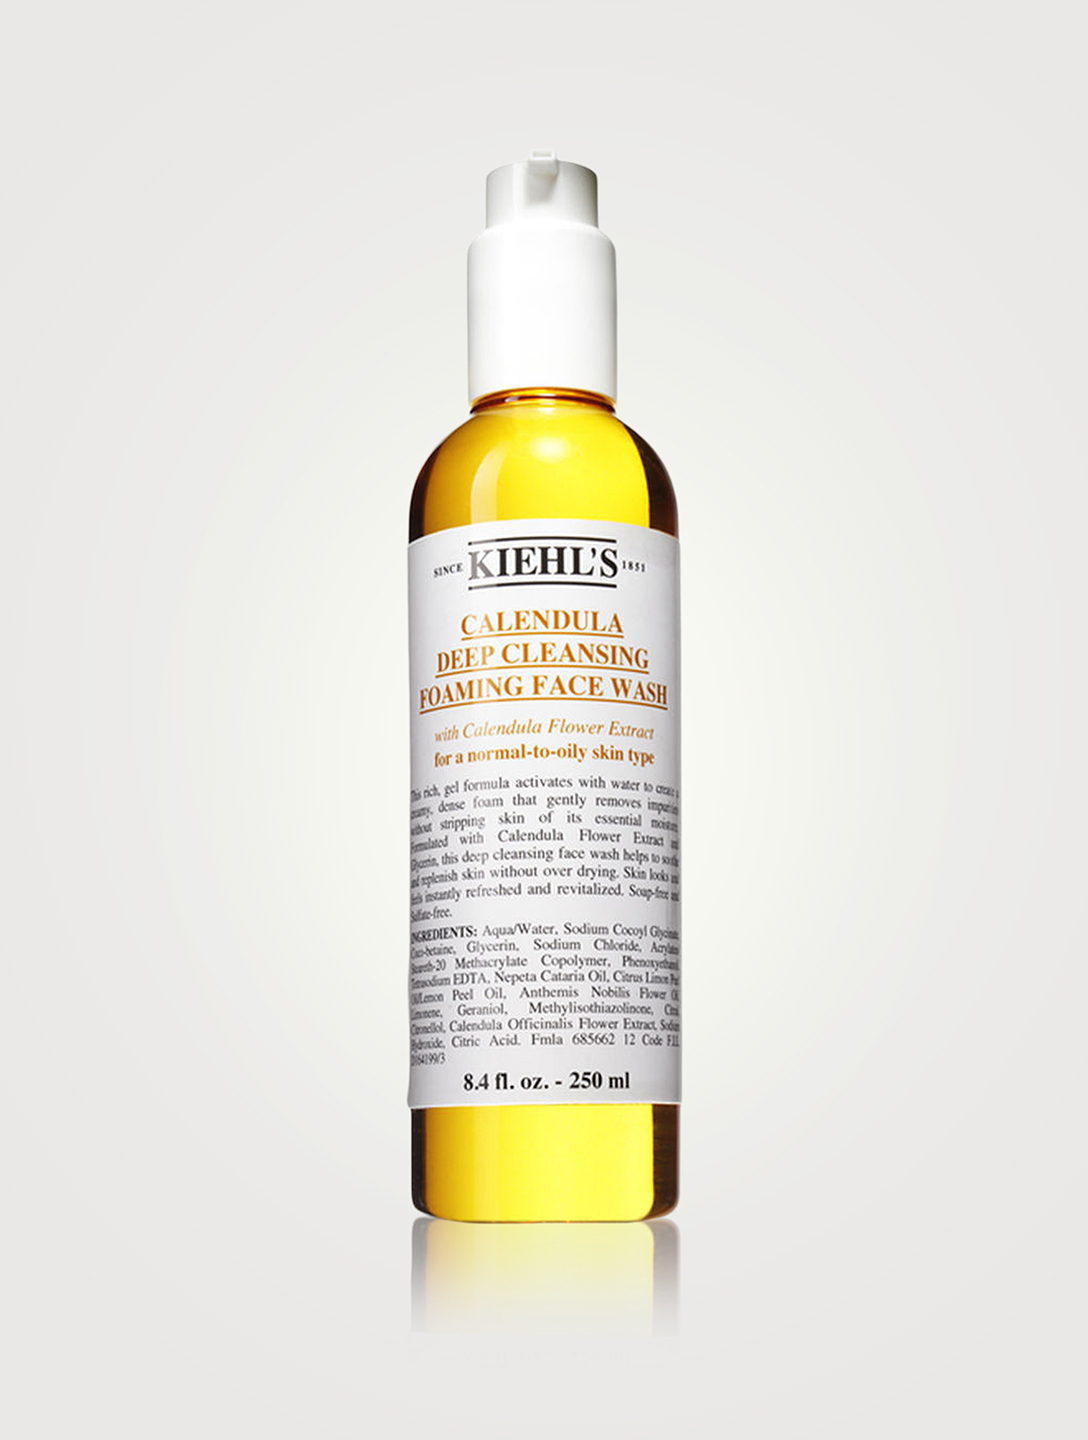 KIEHL'S Calendula Deep Cleansing Foaming Face Wash Beauty